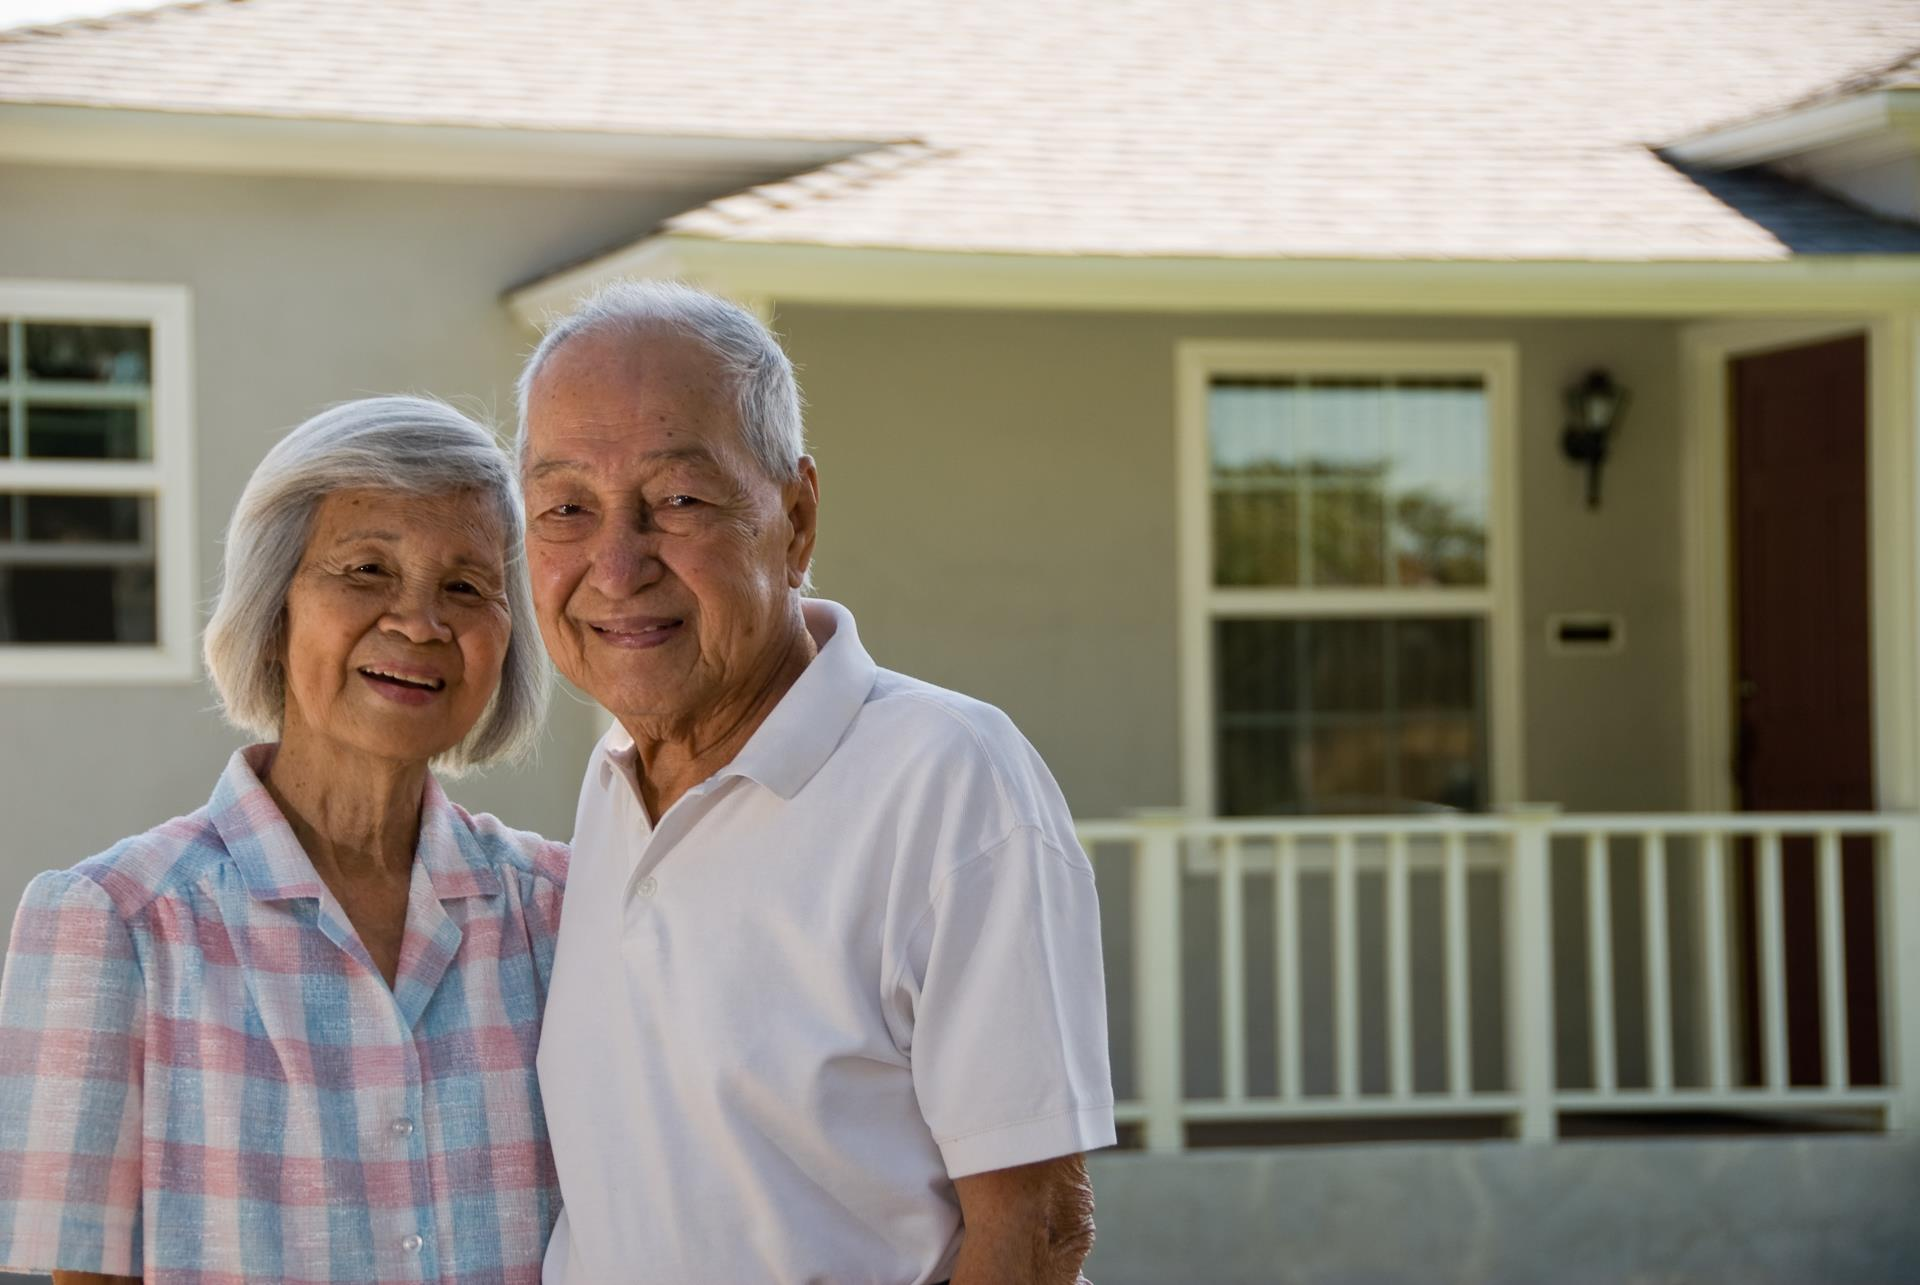 Senior couple in front of house iStock-144320751